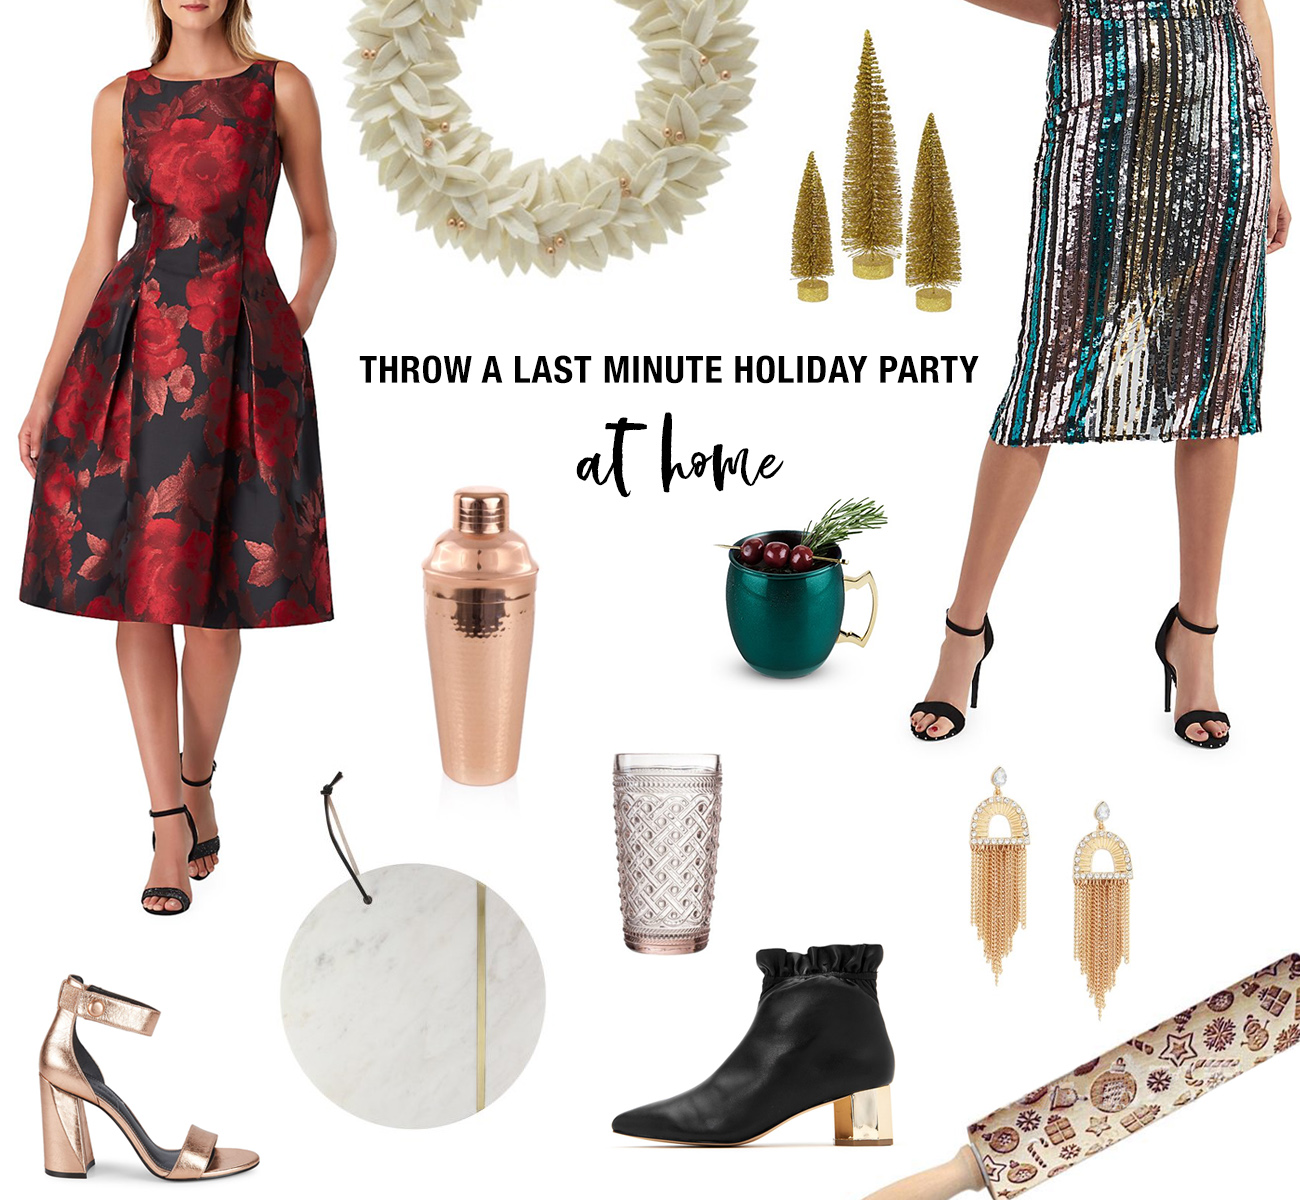 Throw a Holiday Party at Home